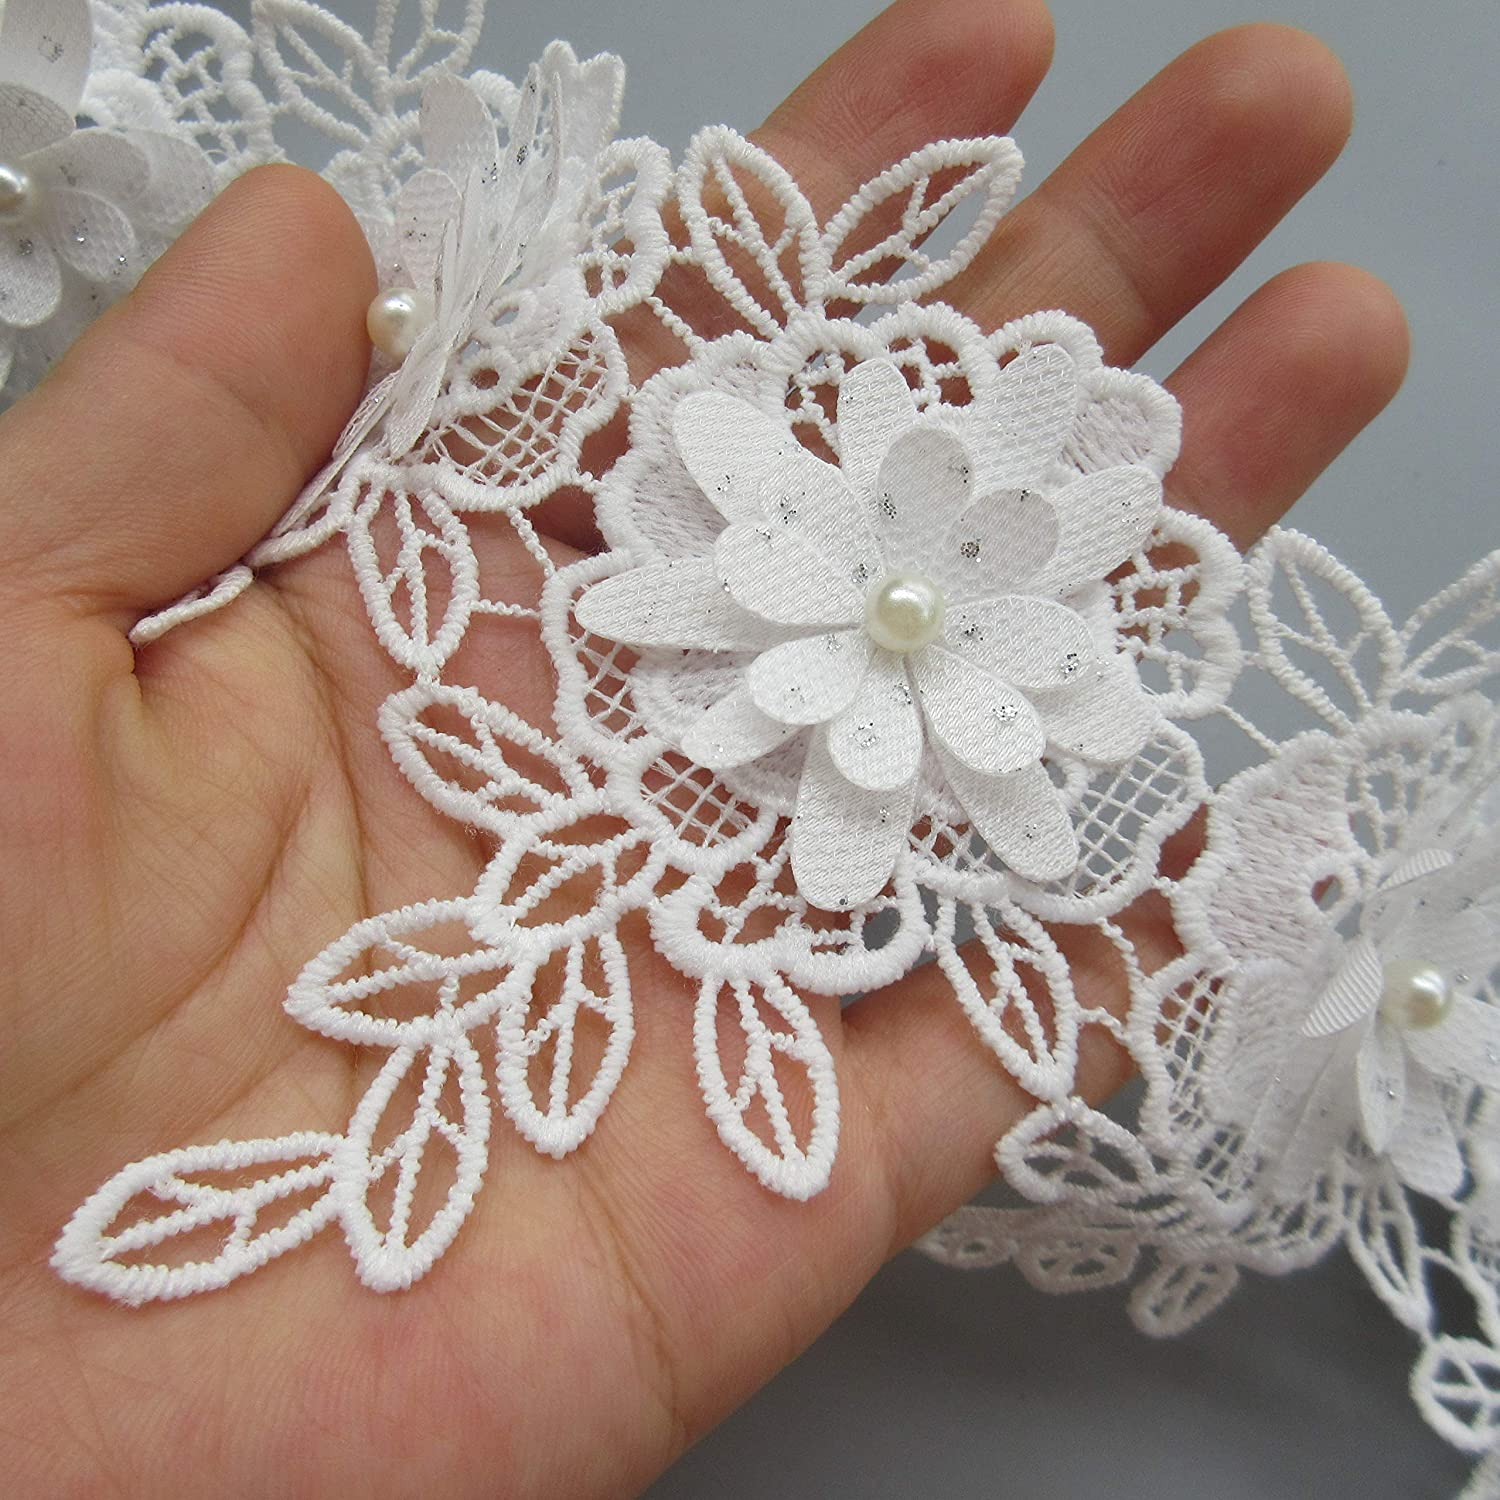 1 Yard 3D Layers Beaded Flower Lace Trim Ribbon Cotton Leaves Fringed Edge 10.2cm Width Vintage White Edging Trimming Fabric Embroidered Applique Sewing Craft Wedding Bridal Dress Clothes Headband DIY